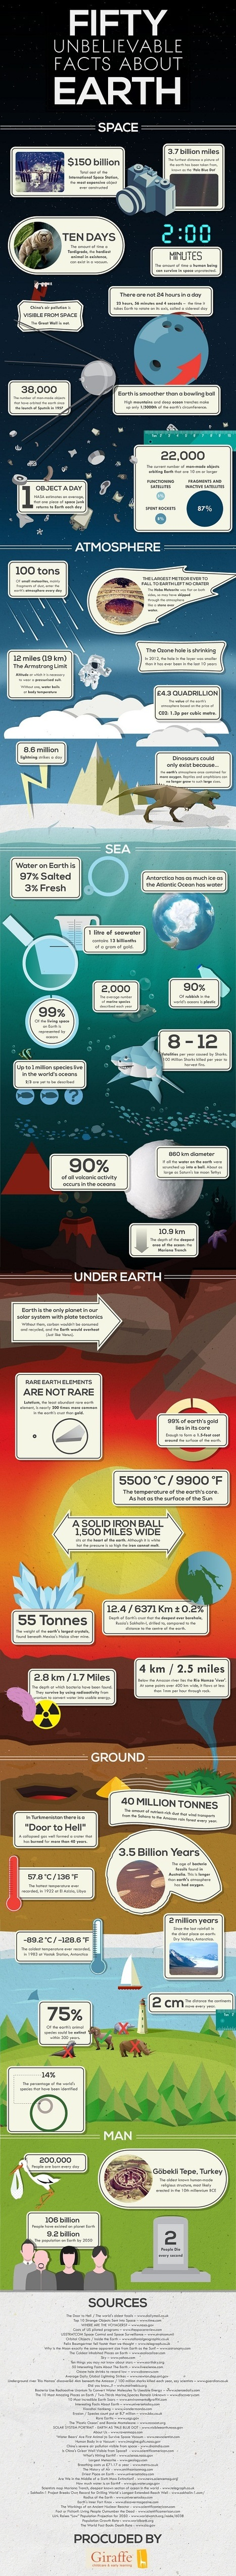 50 Awesome Facts About Earth To Share With Your Class [Infographic] | Links for Units of Inquiry in PYP | Scoop.it